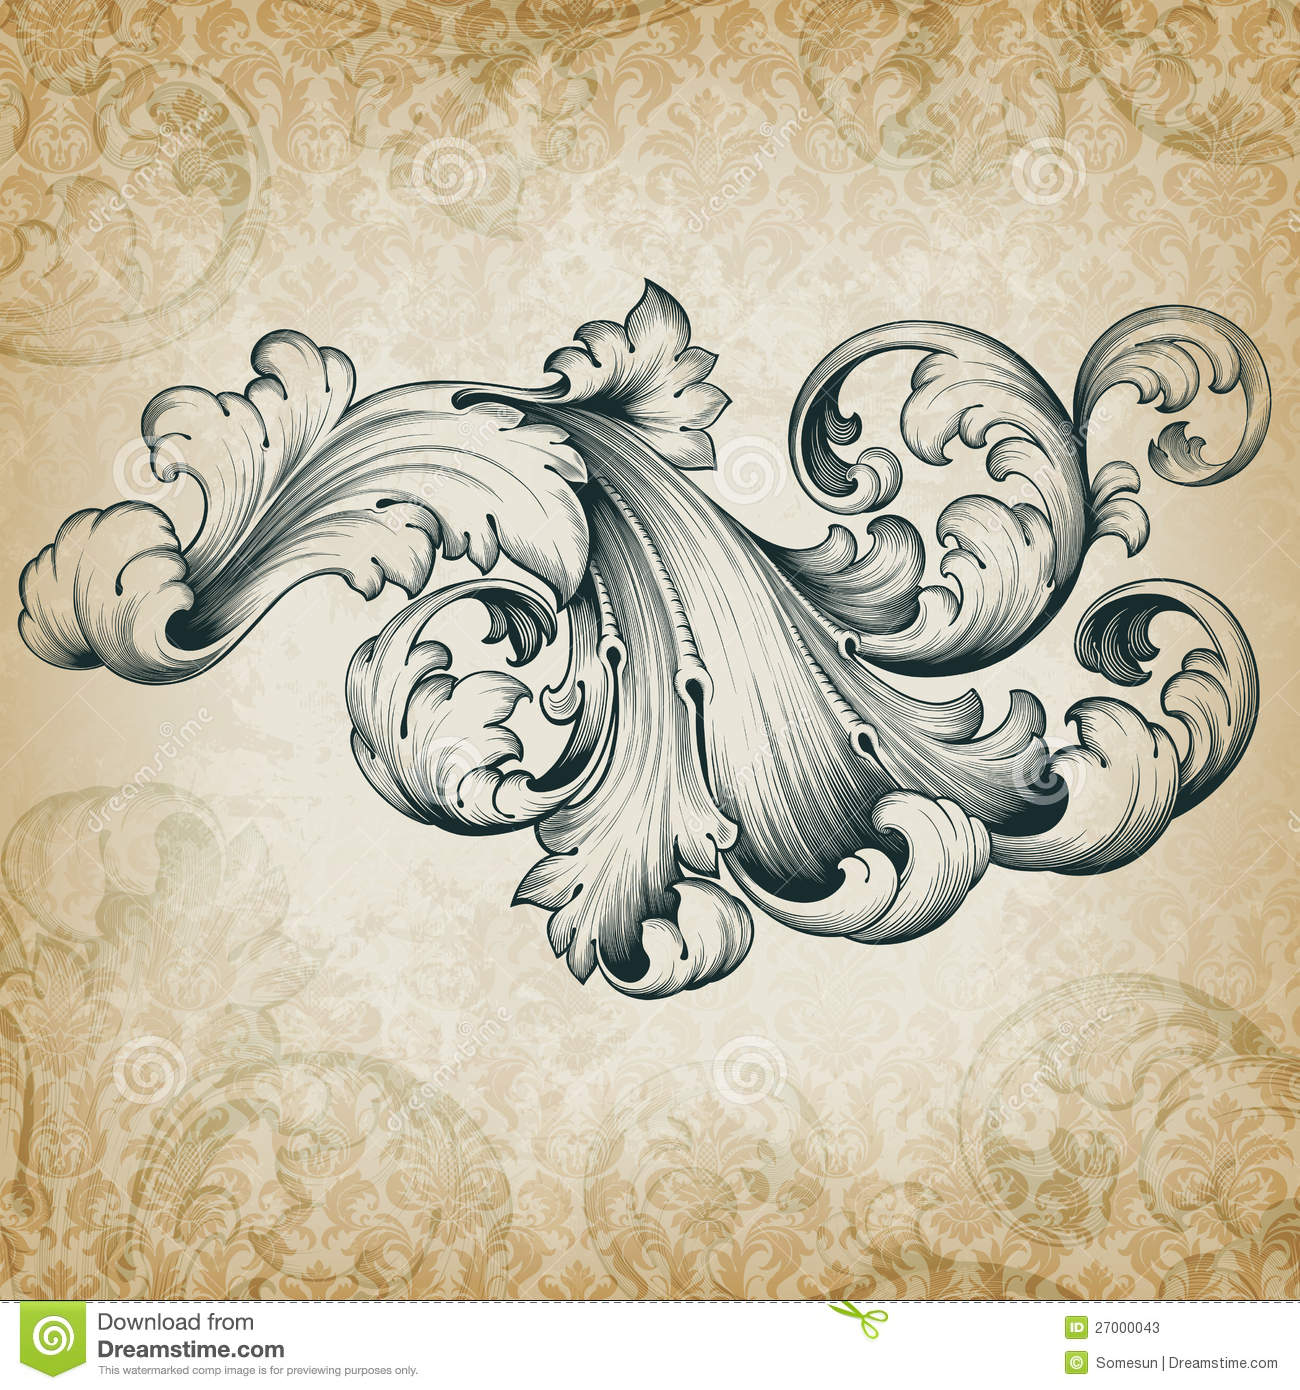 Antique Scrollimgs: Acanthus Scroll Vector Illustration